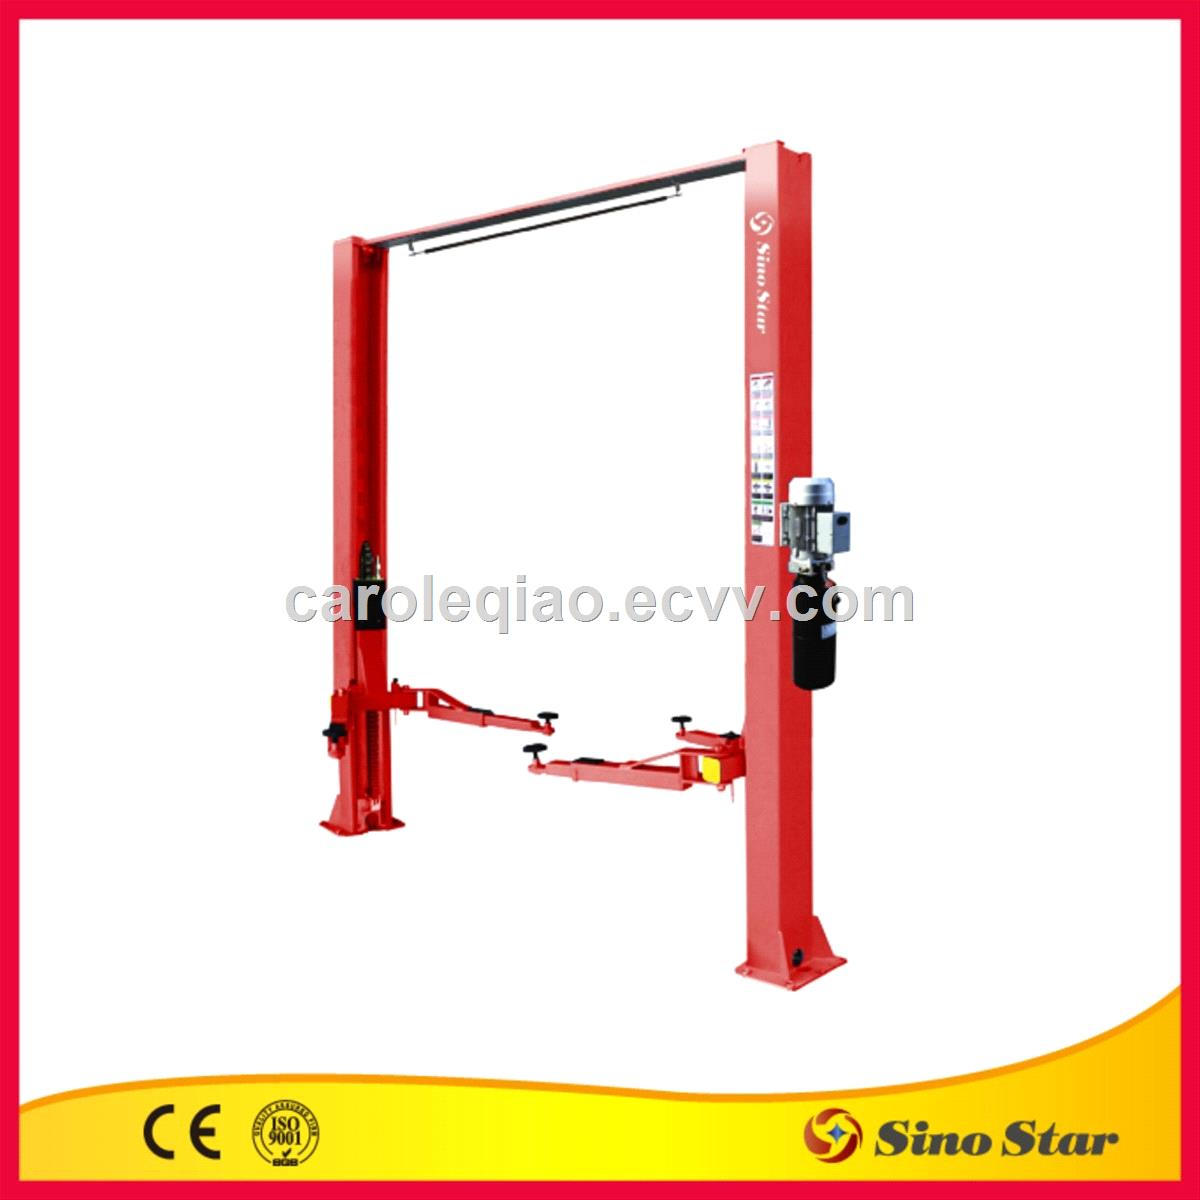 base plate two post lift manual lock release ss cla 40 purchasing rh ecvv com Electrical Wiring Diagrams for Cars Residential Garage Car Lifts